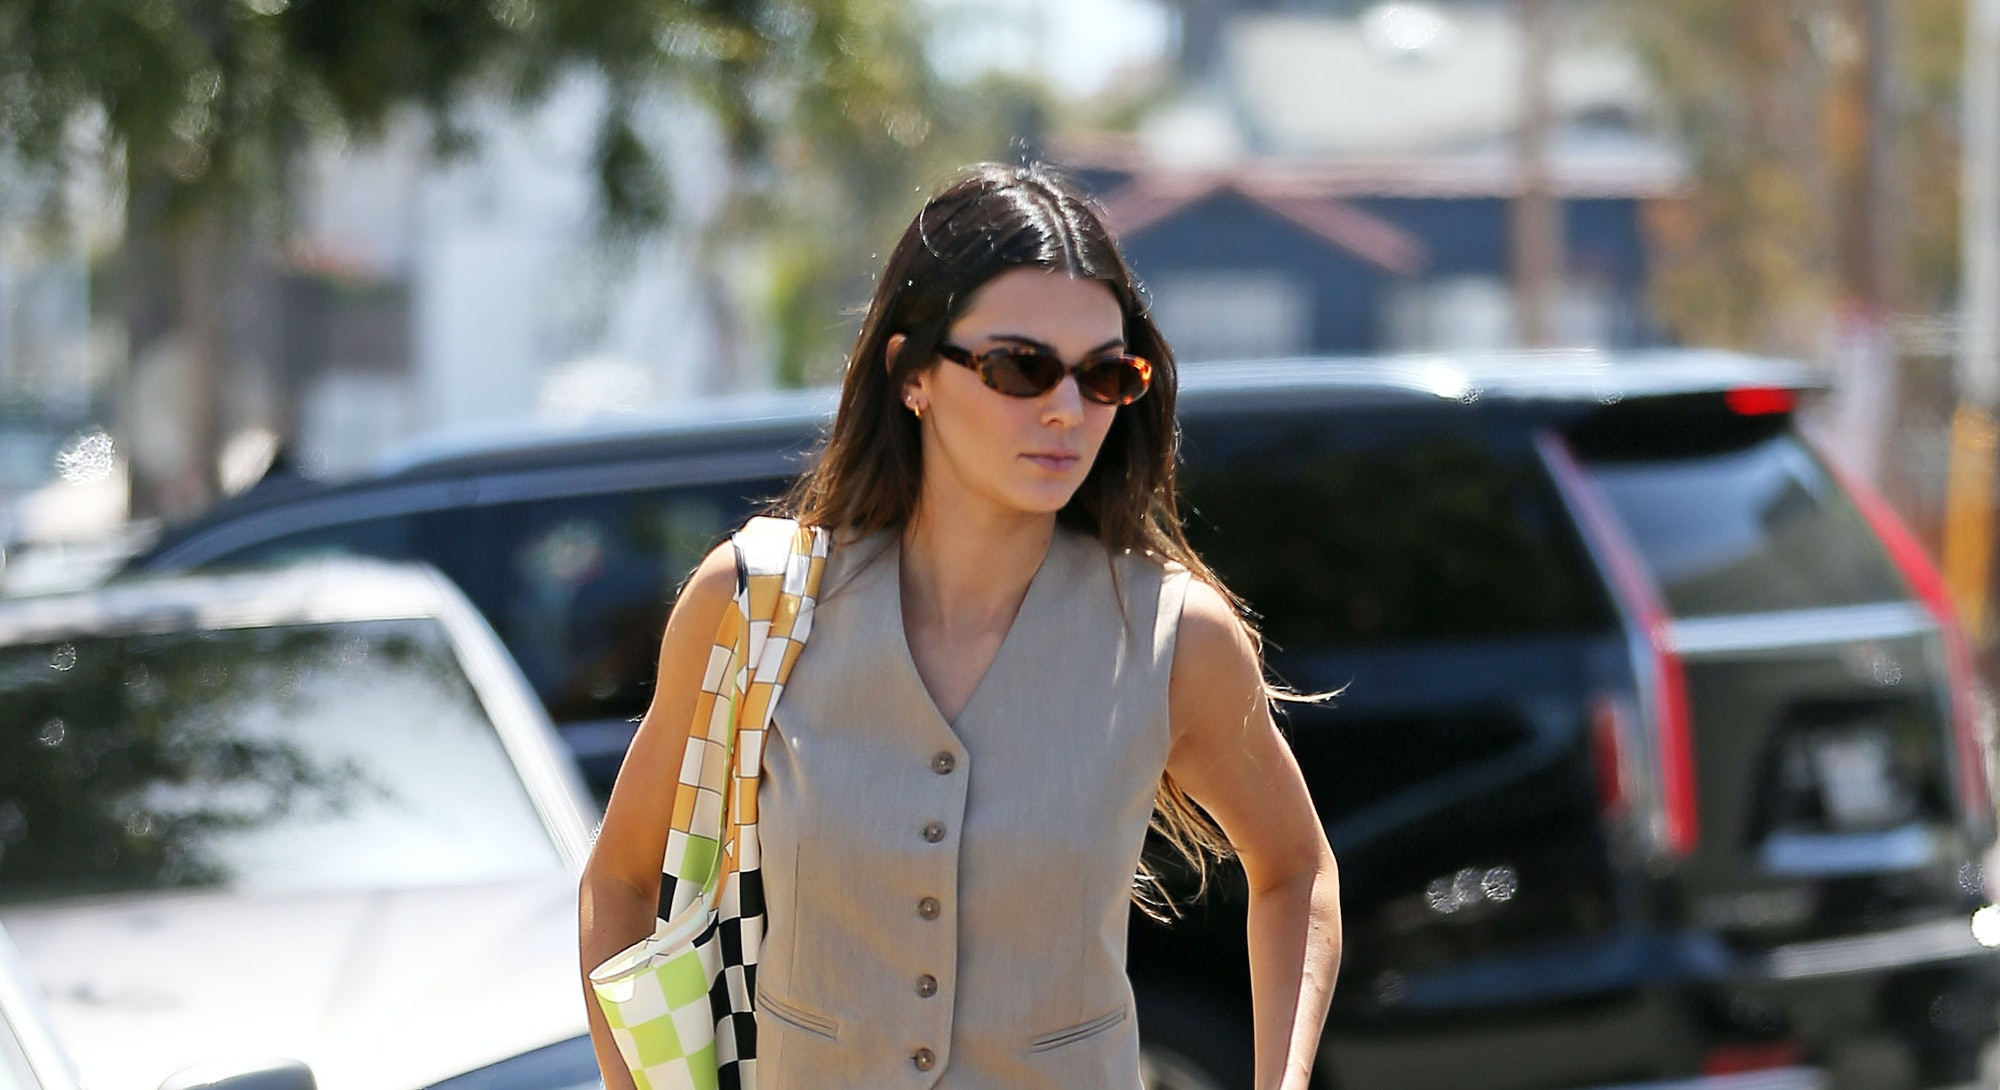 LOS ANGELES, CA - MAY 26: Kendall Jenner is seen on May 26, 2021 in Los Angeles, California. (Photo ...